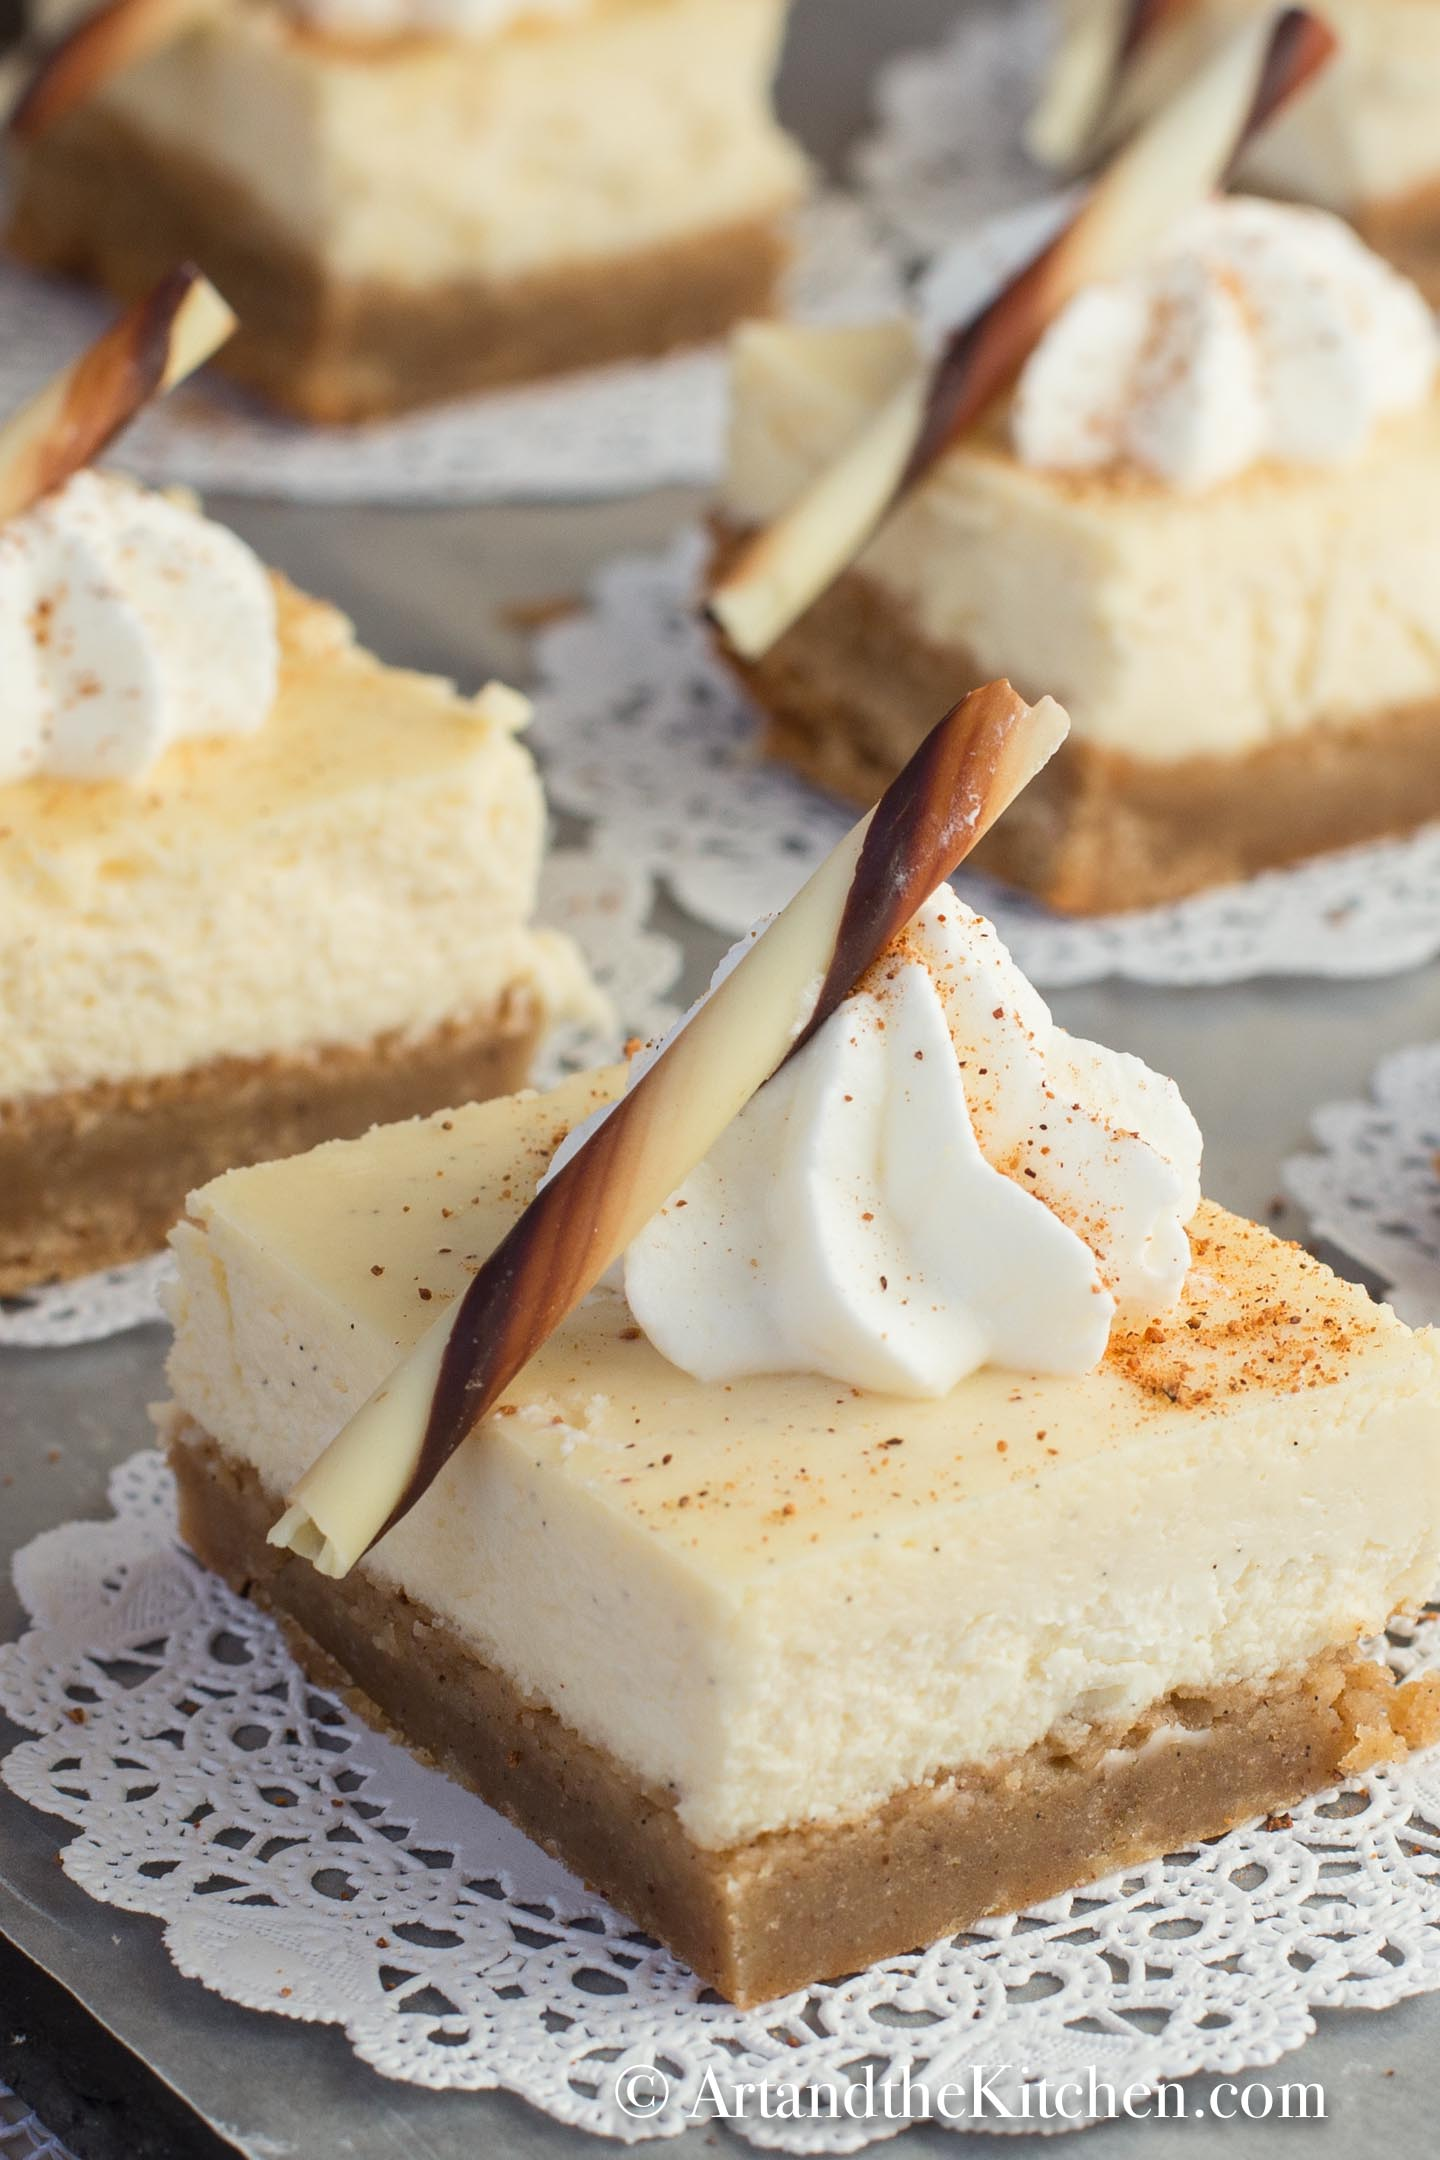 Squares of cheesecake on white paper dollies. Decorated with a dollop of whipped cream and chocolate stick.